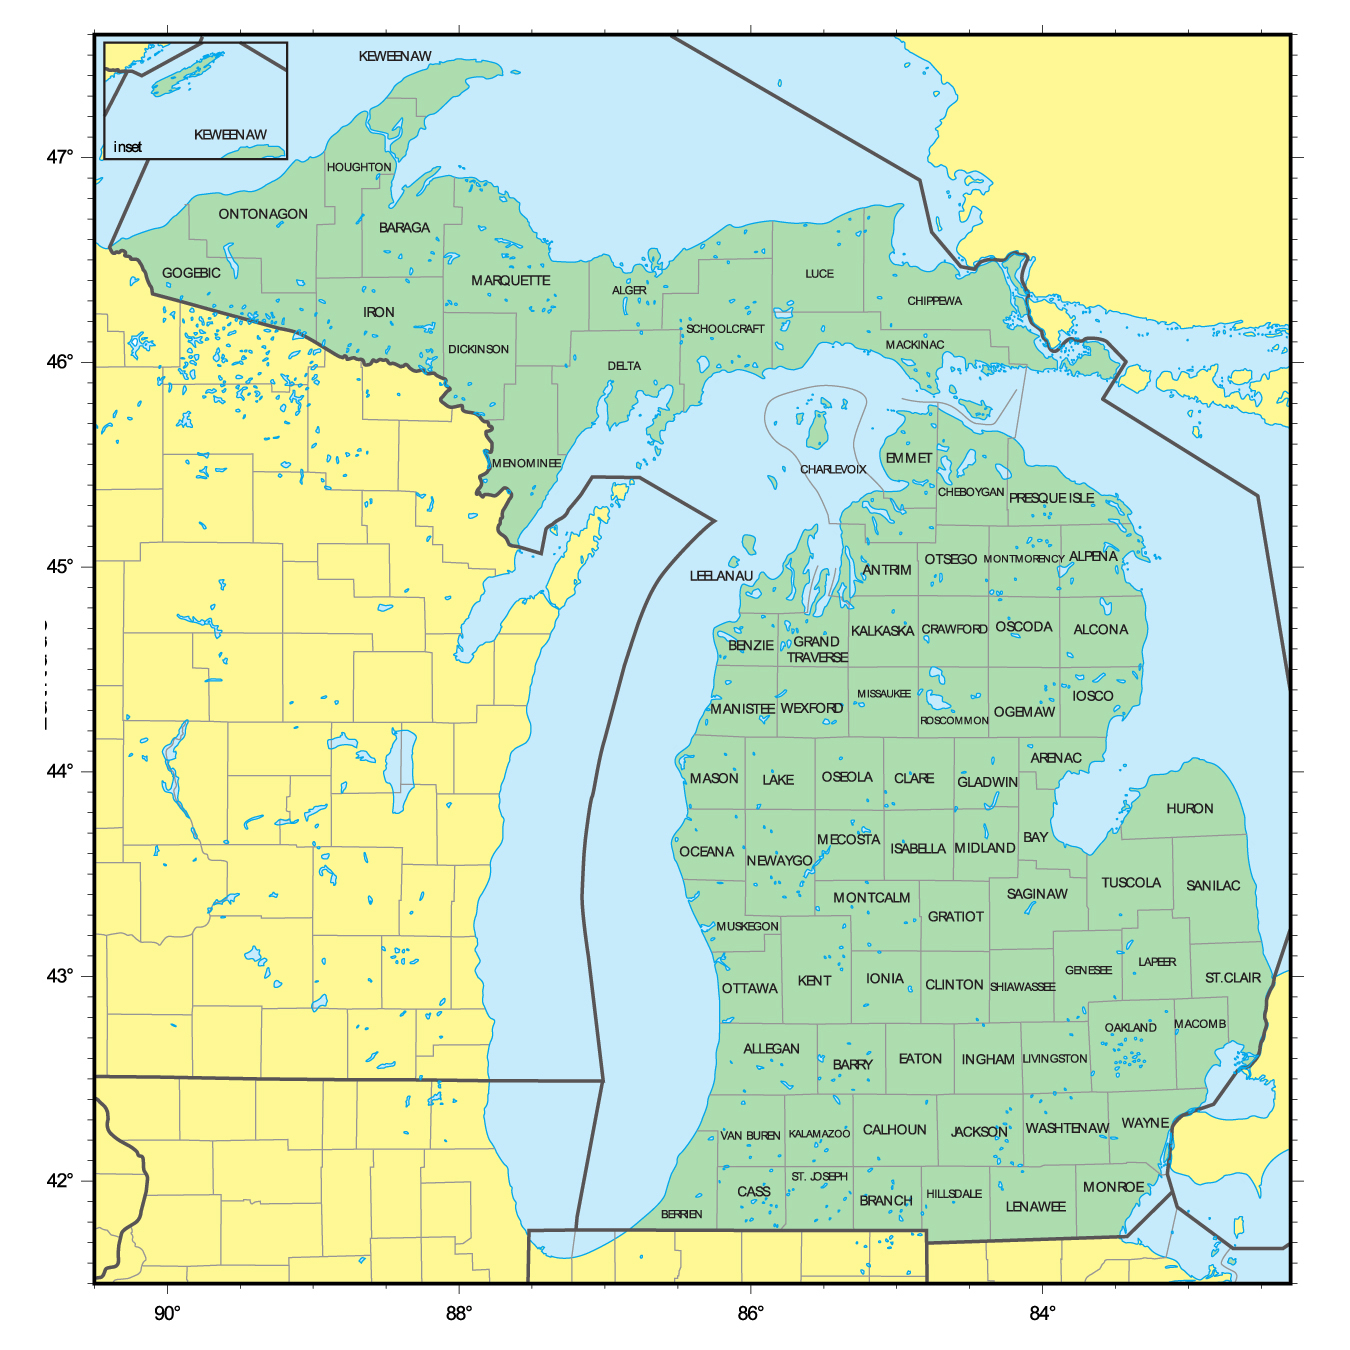 Detailed administrative map of Michigan state Michigan state USA